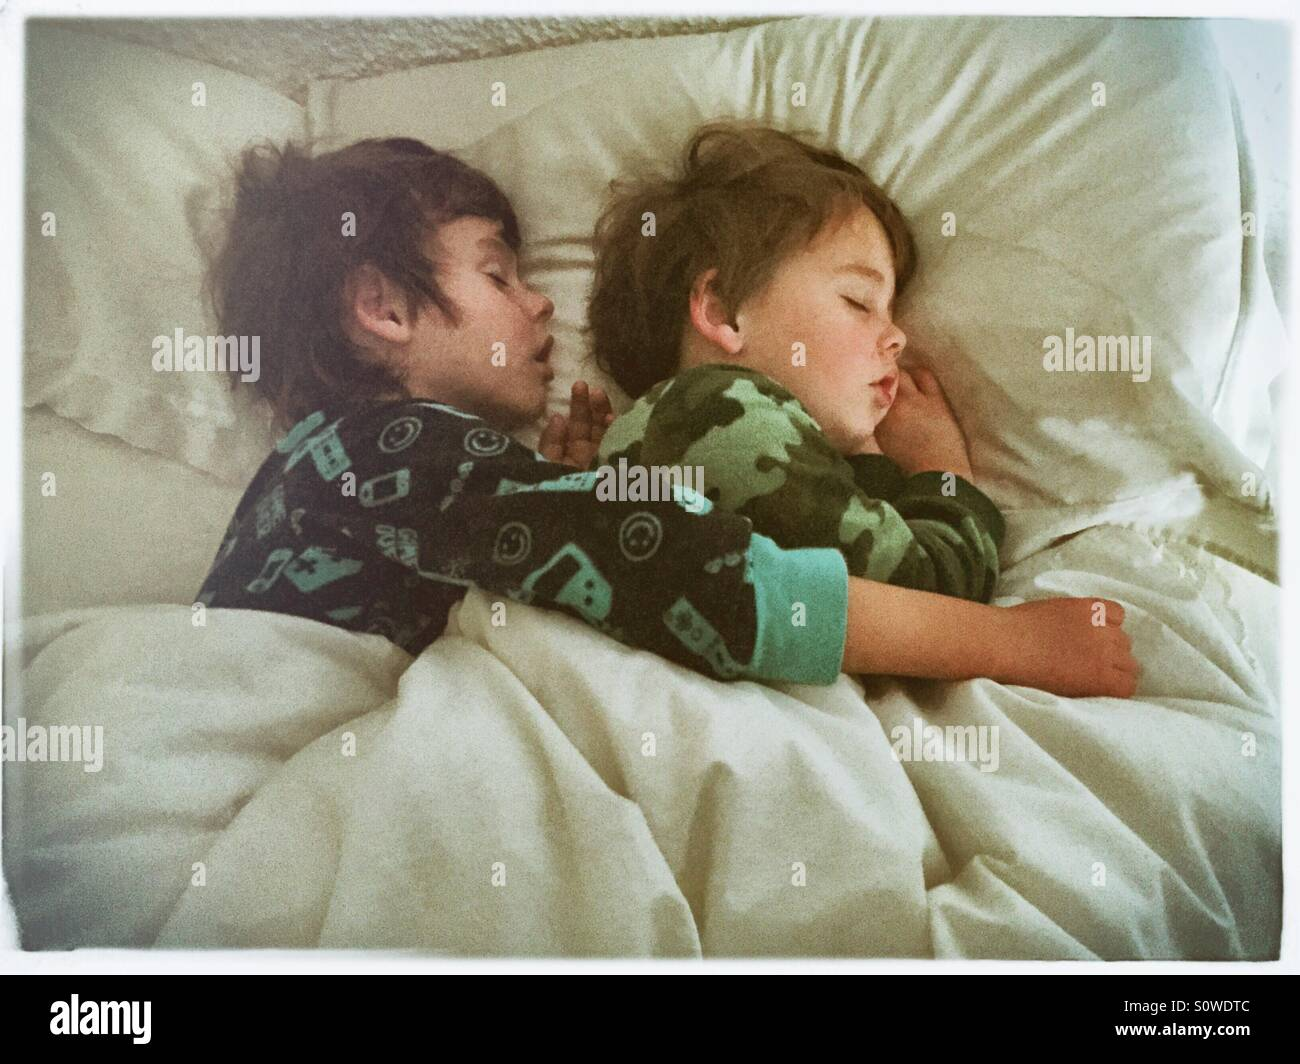 Brothers sleeping - Stock Image